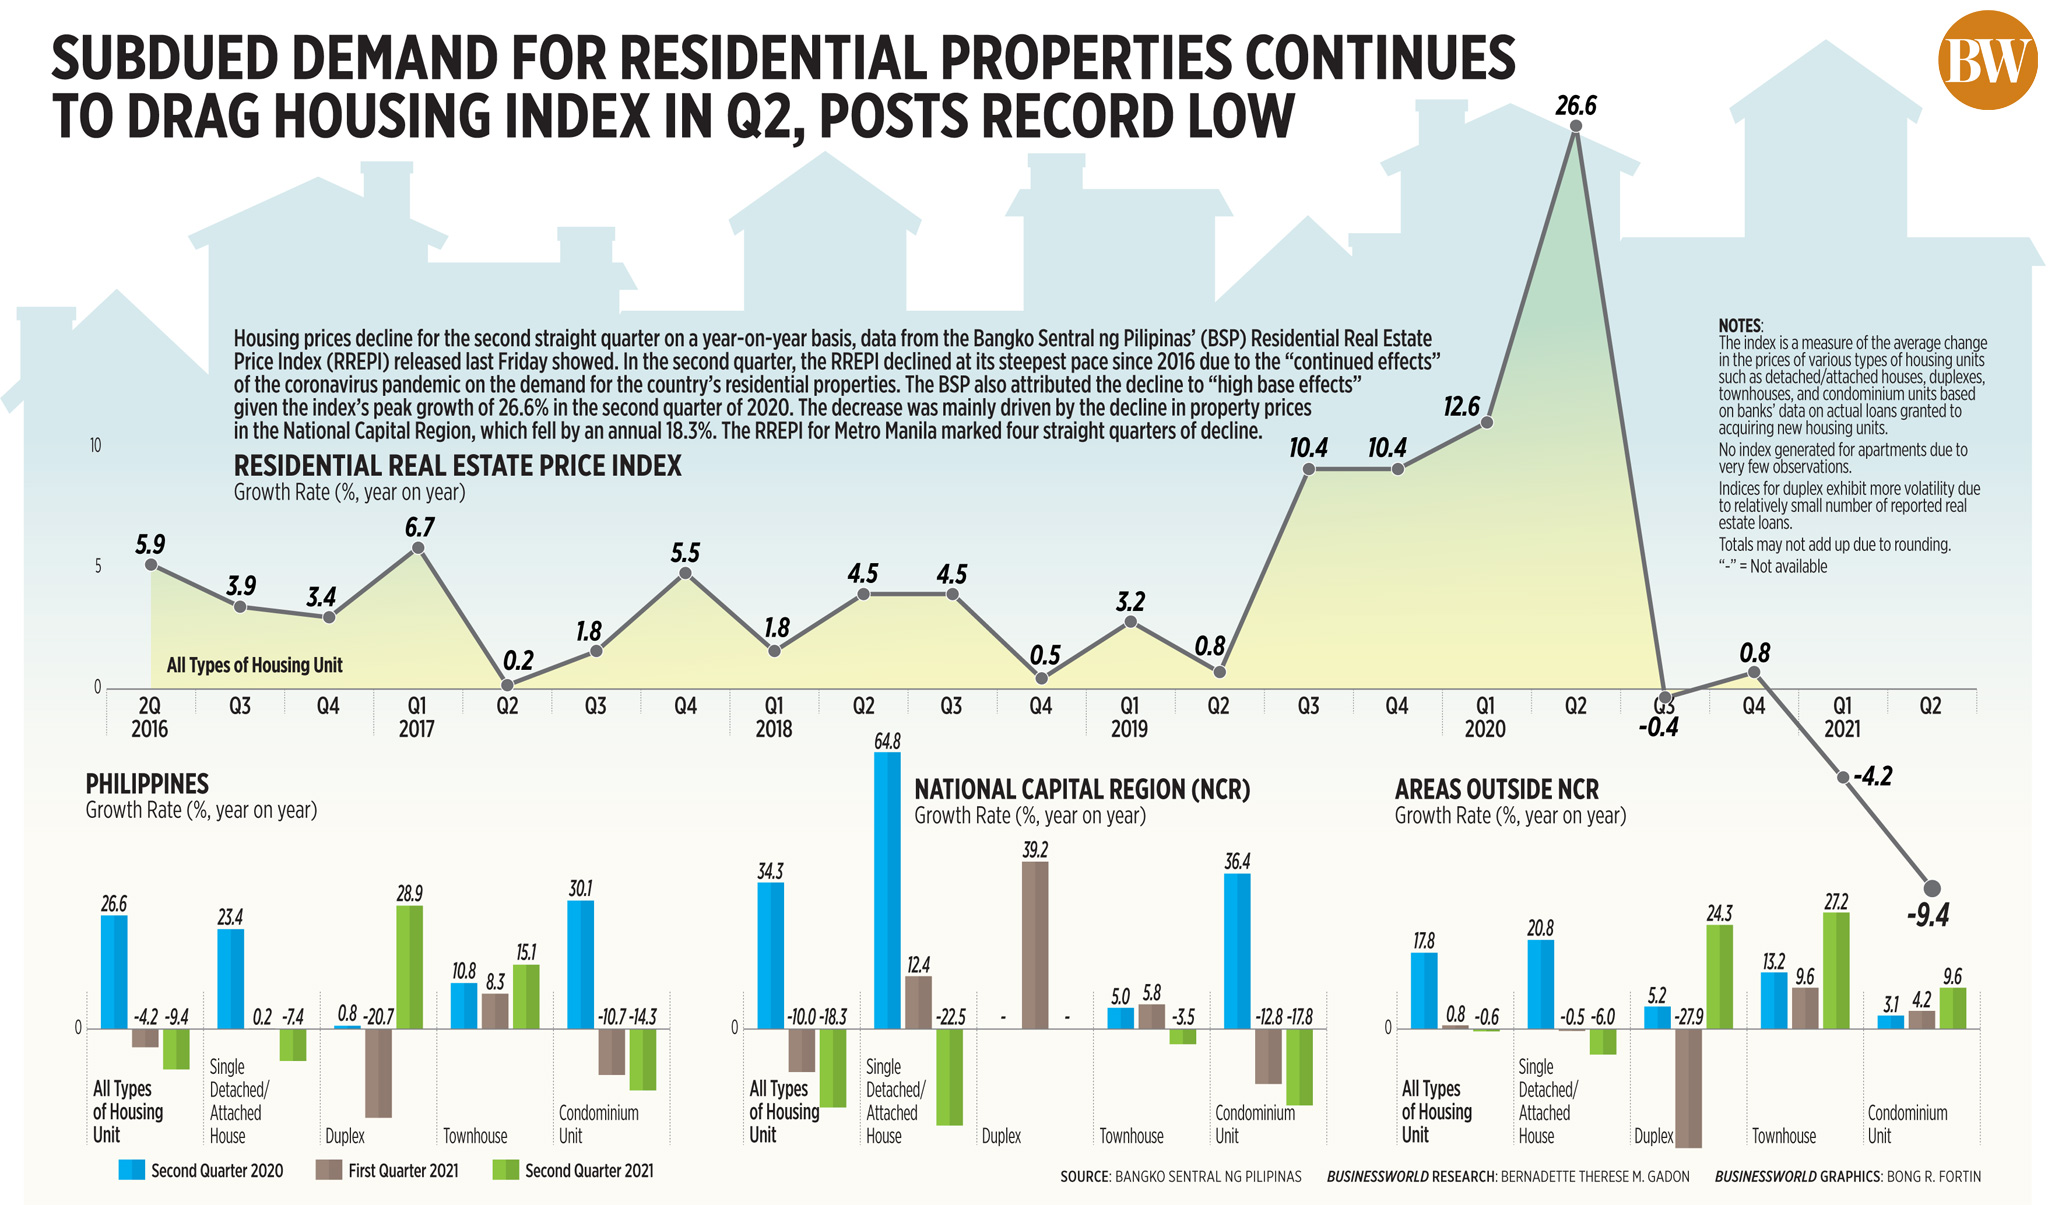 Subdued demand for residential properties continues to drag housing index in Q2, posts record low